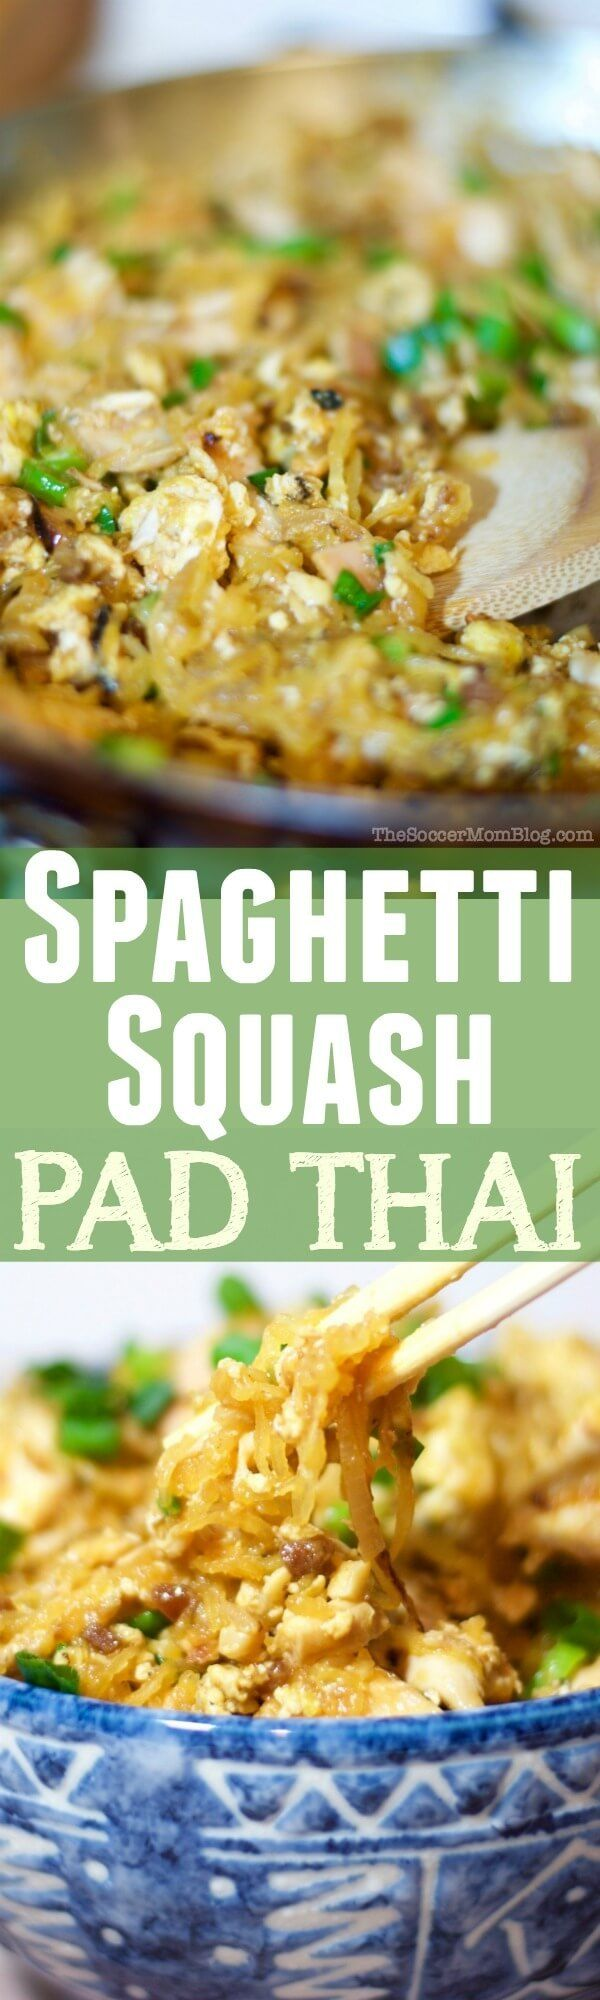 A guilt-free Spaghetti Squash Pad Thai recipe that tastes so amazing, you'd almost swear it's the real thing!